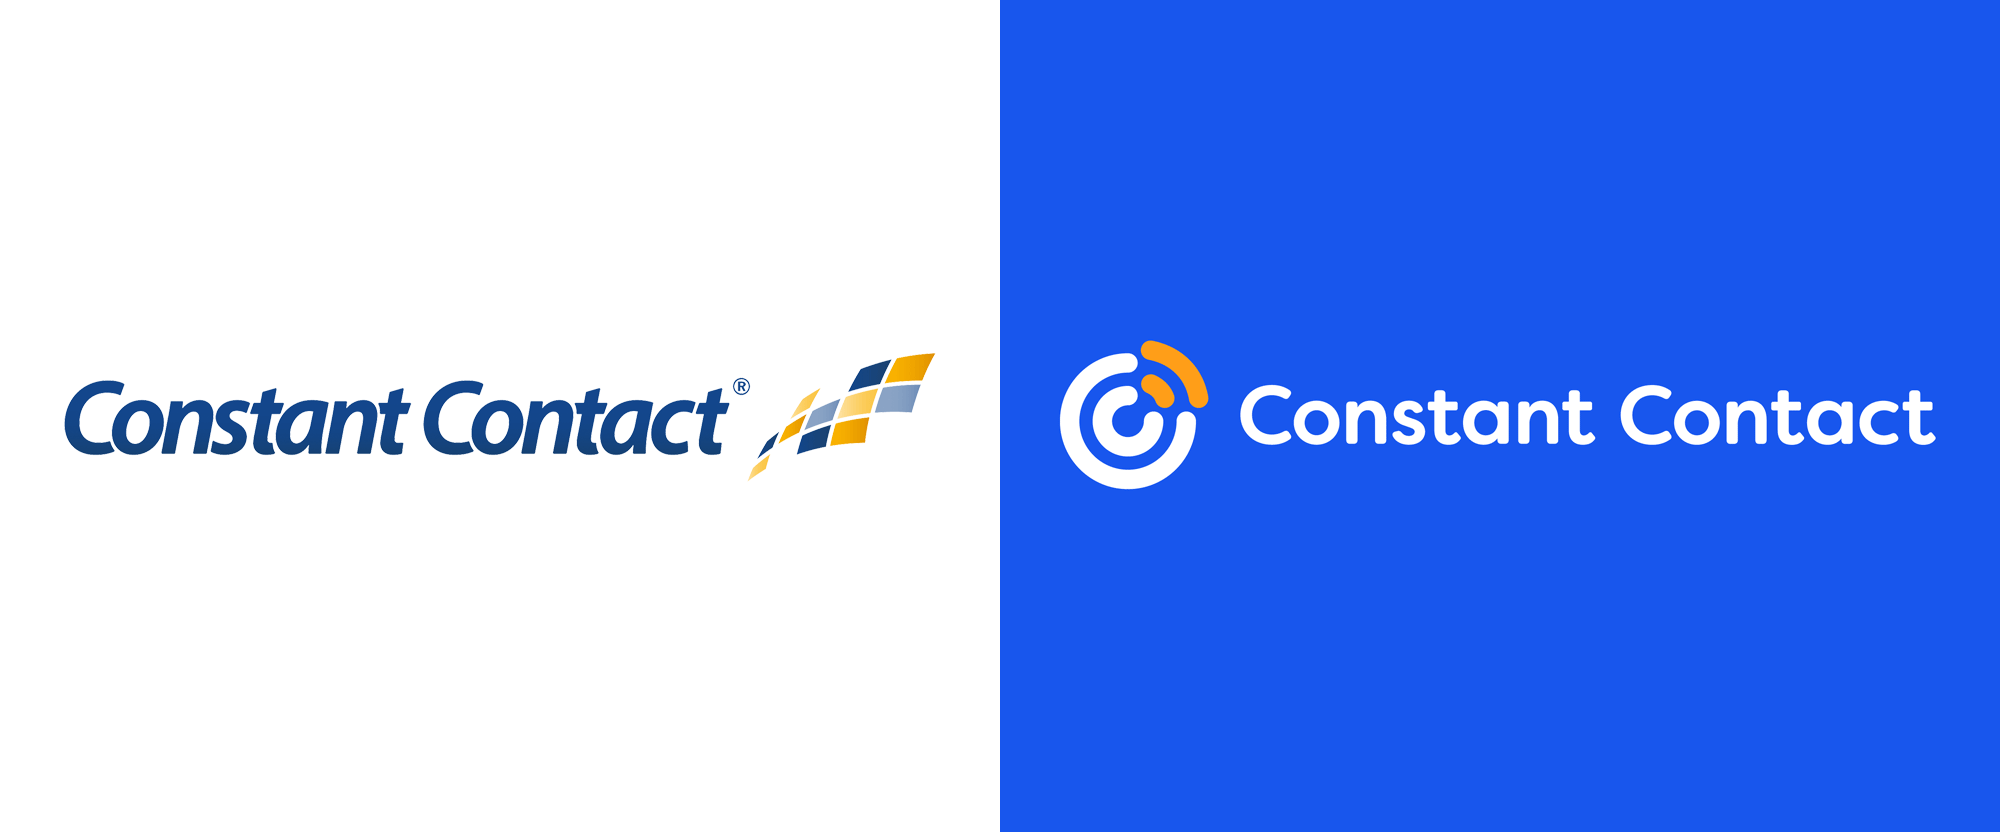 New Logo and Identity for Constant Contact